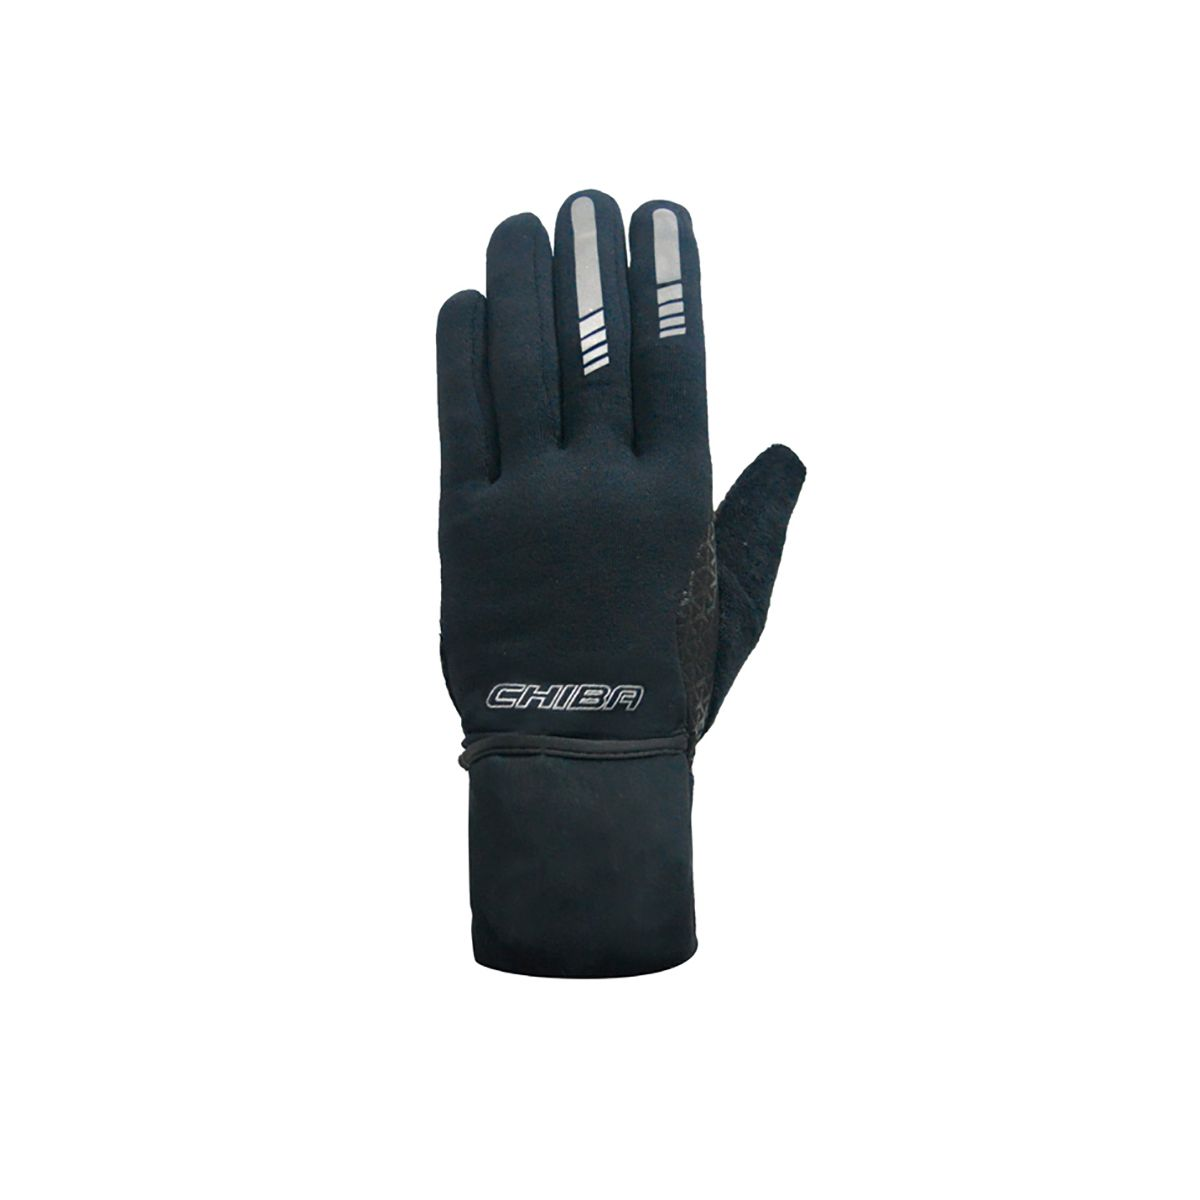 Polartec XP Advanced winter gloves